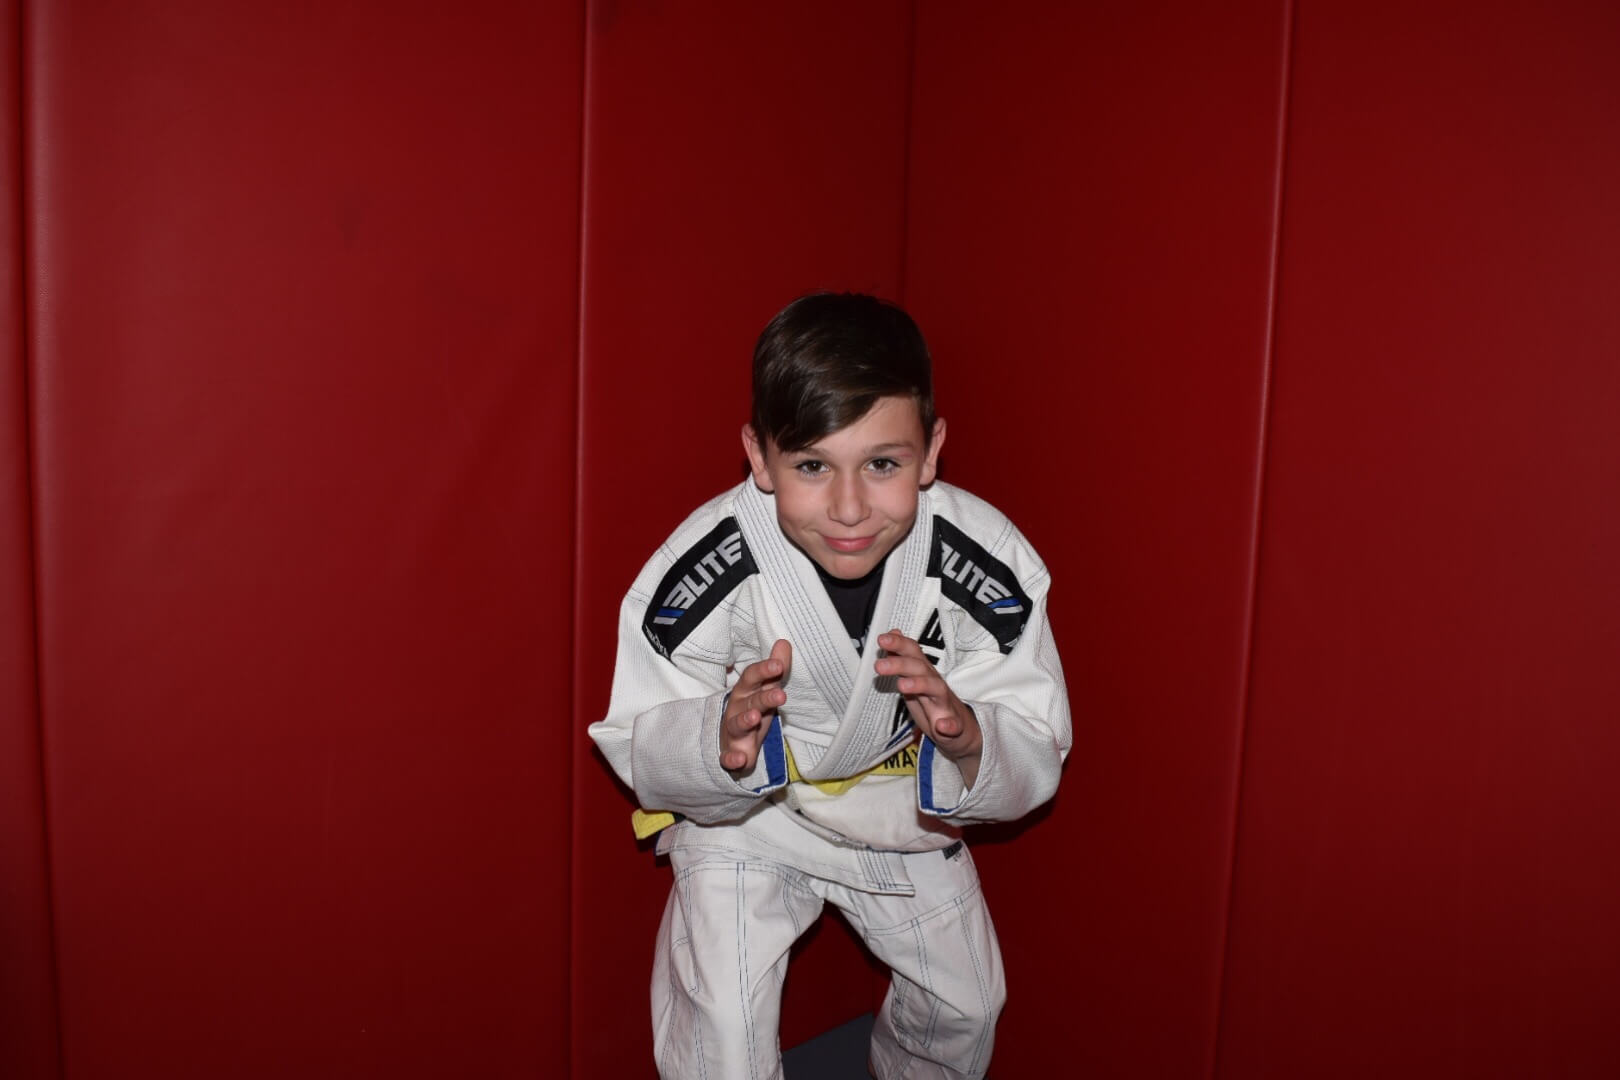 Elite Sports Team Elite Bjj Fighter Maximus MacDougall  Image2